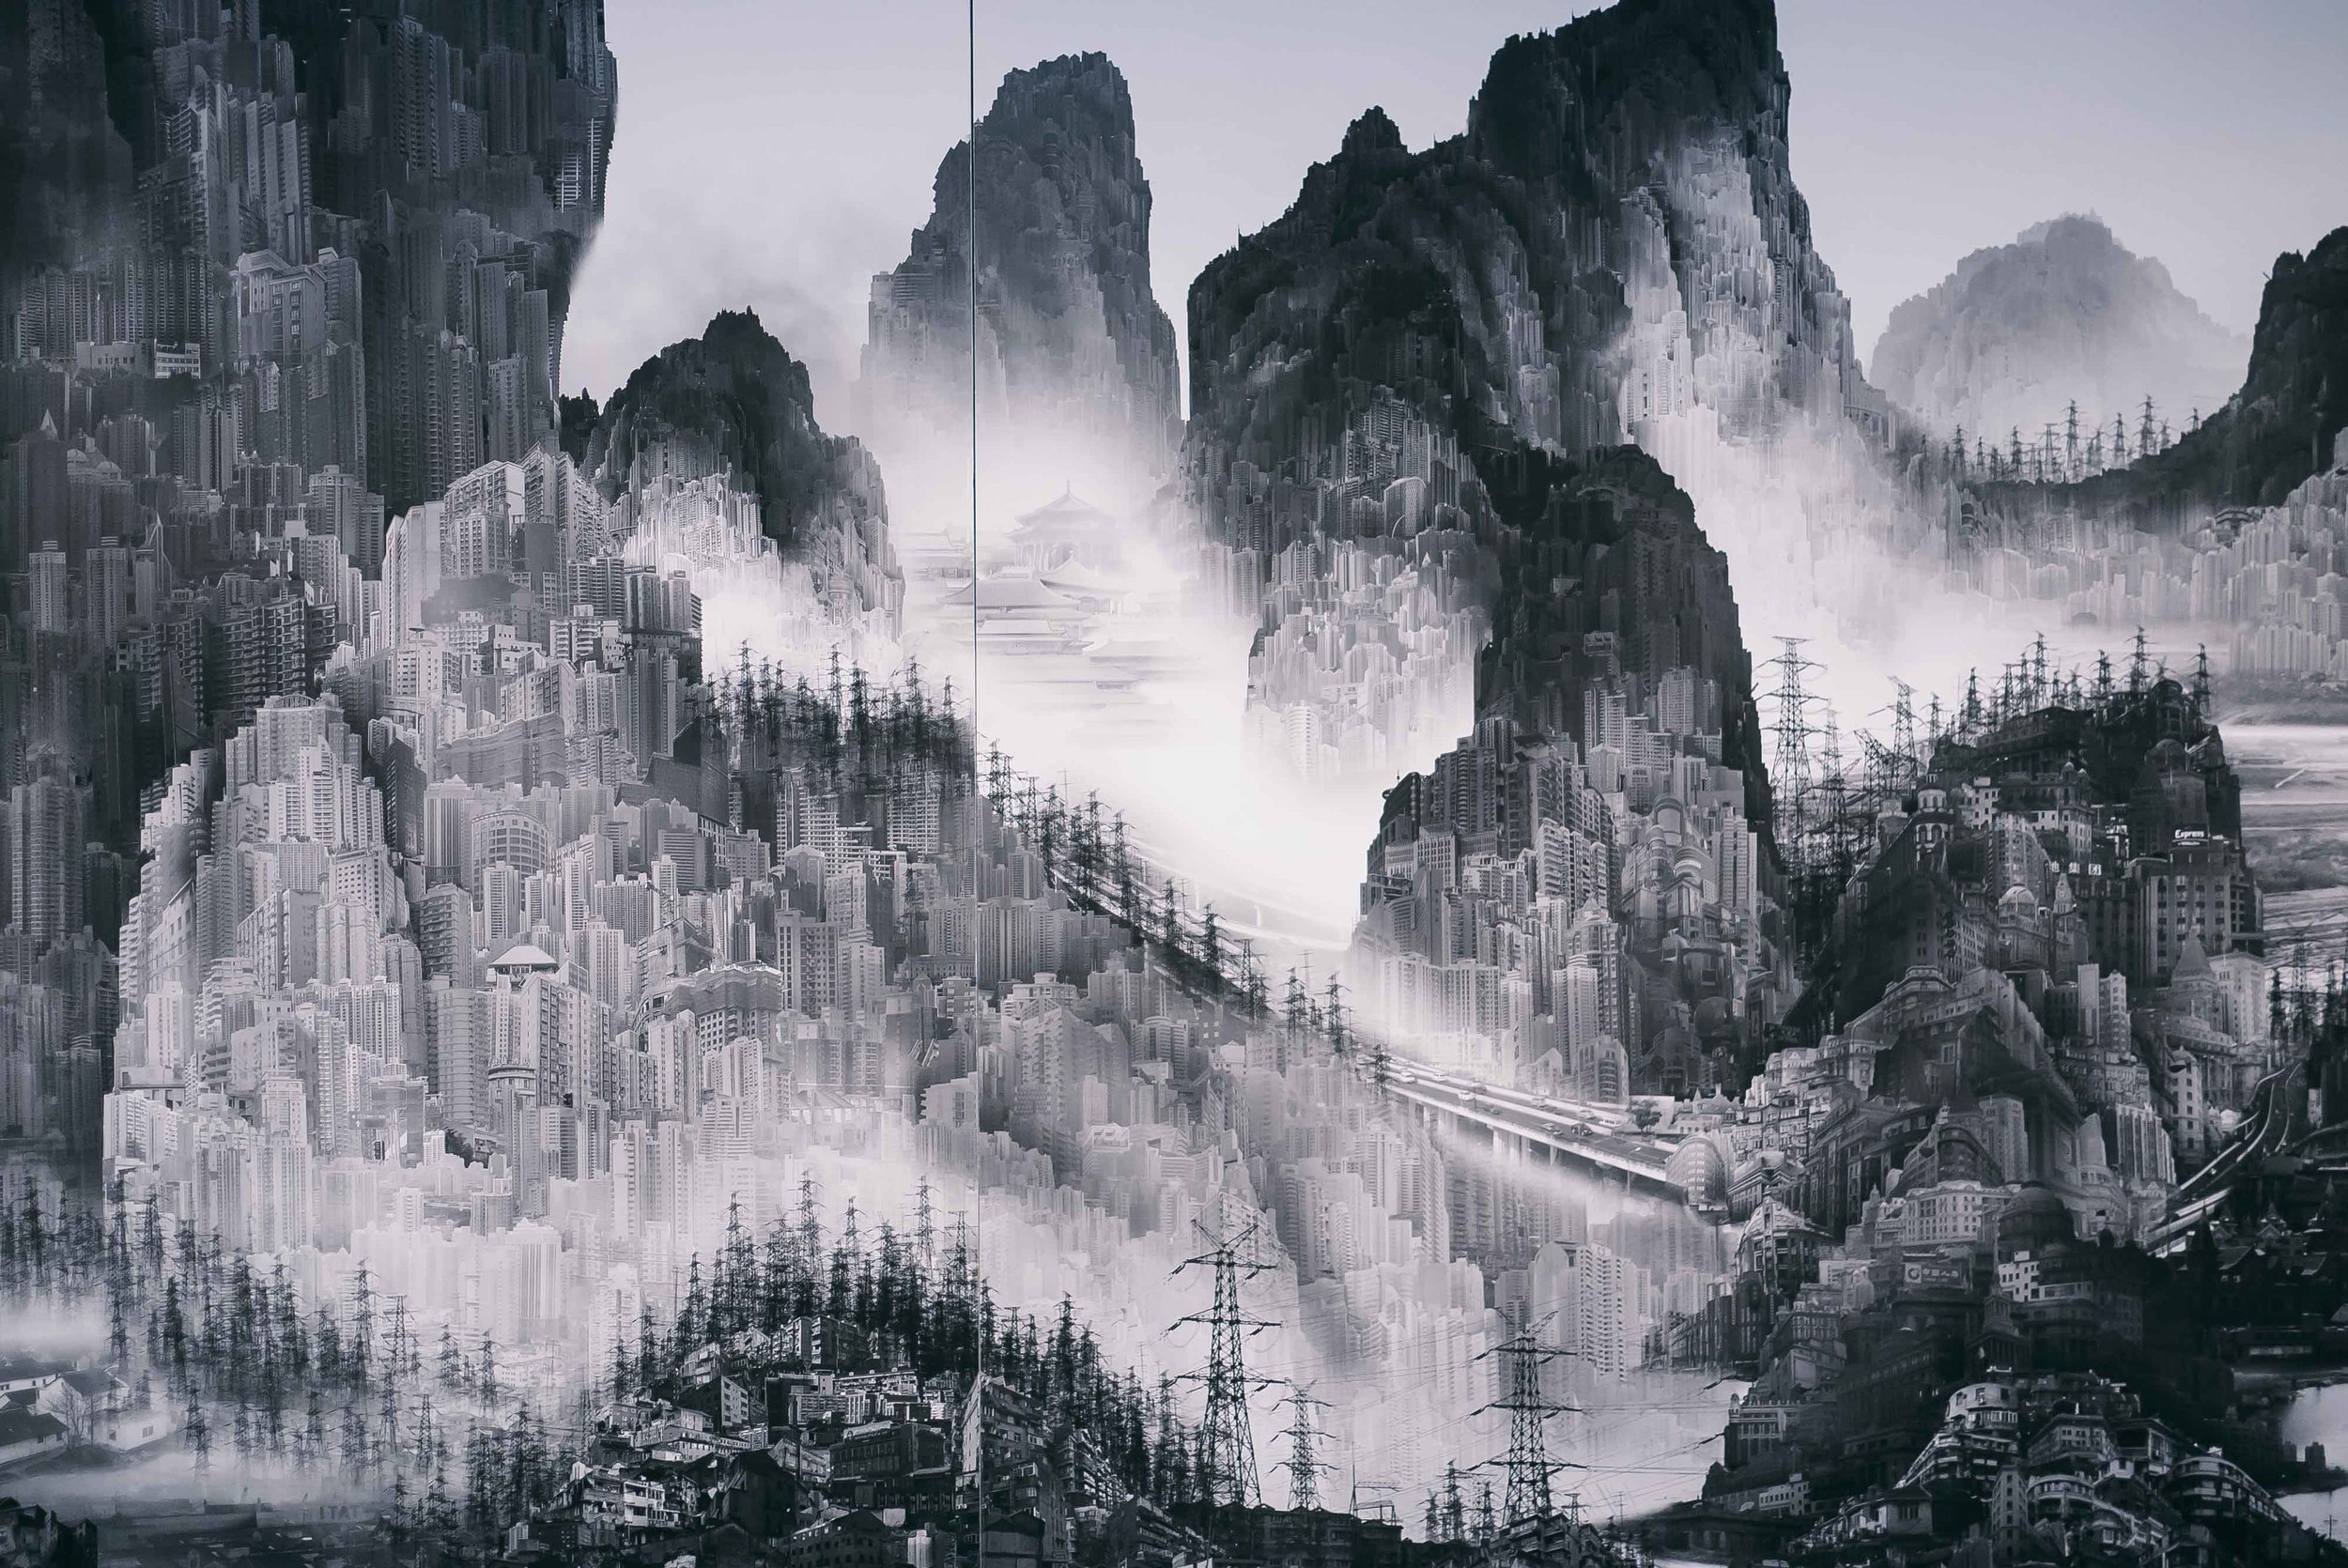 Yang Yongliang's exhibition   is a must-see at the museum. It elevates traditional, Chinese ink paintings onto the digital landscape, where the old techniques meet a new medium. What an impactful way to showcase the increasingly dystopian progress of society.